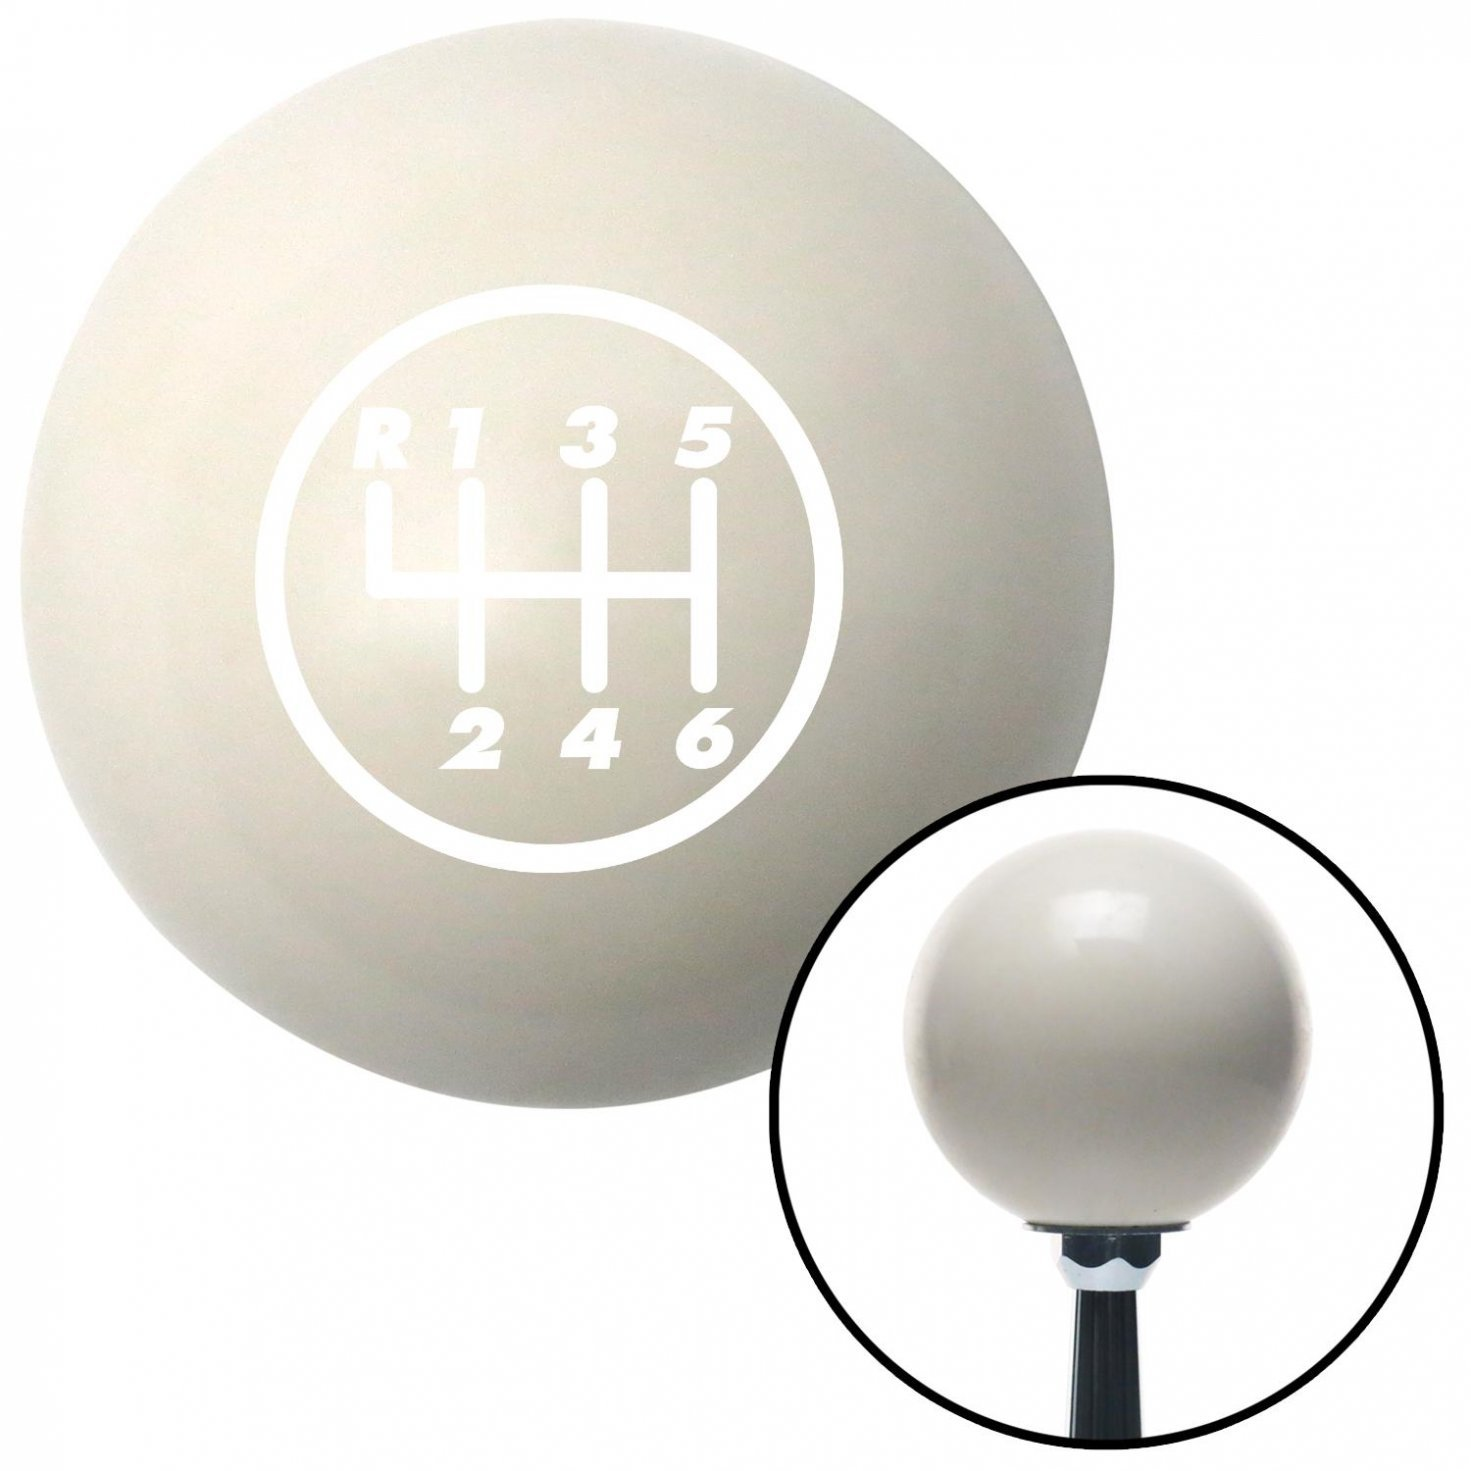 American Shifter 29268 Ivory Shift Knob White 6 Speed Shift Pattern - 6DR-RUL